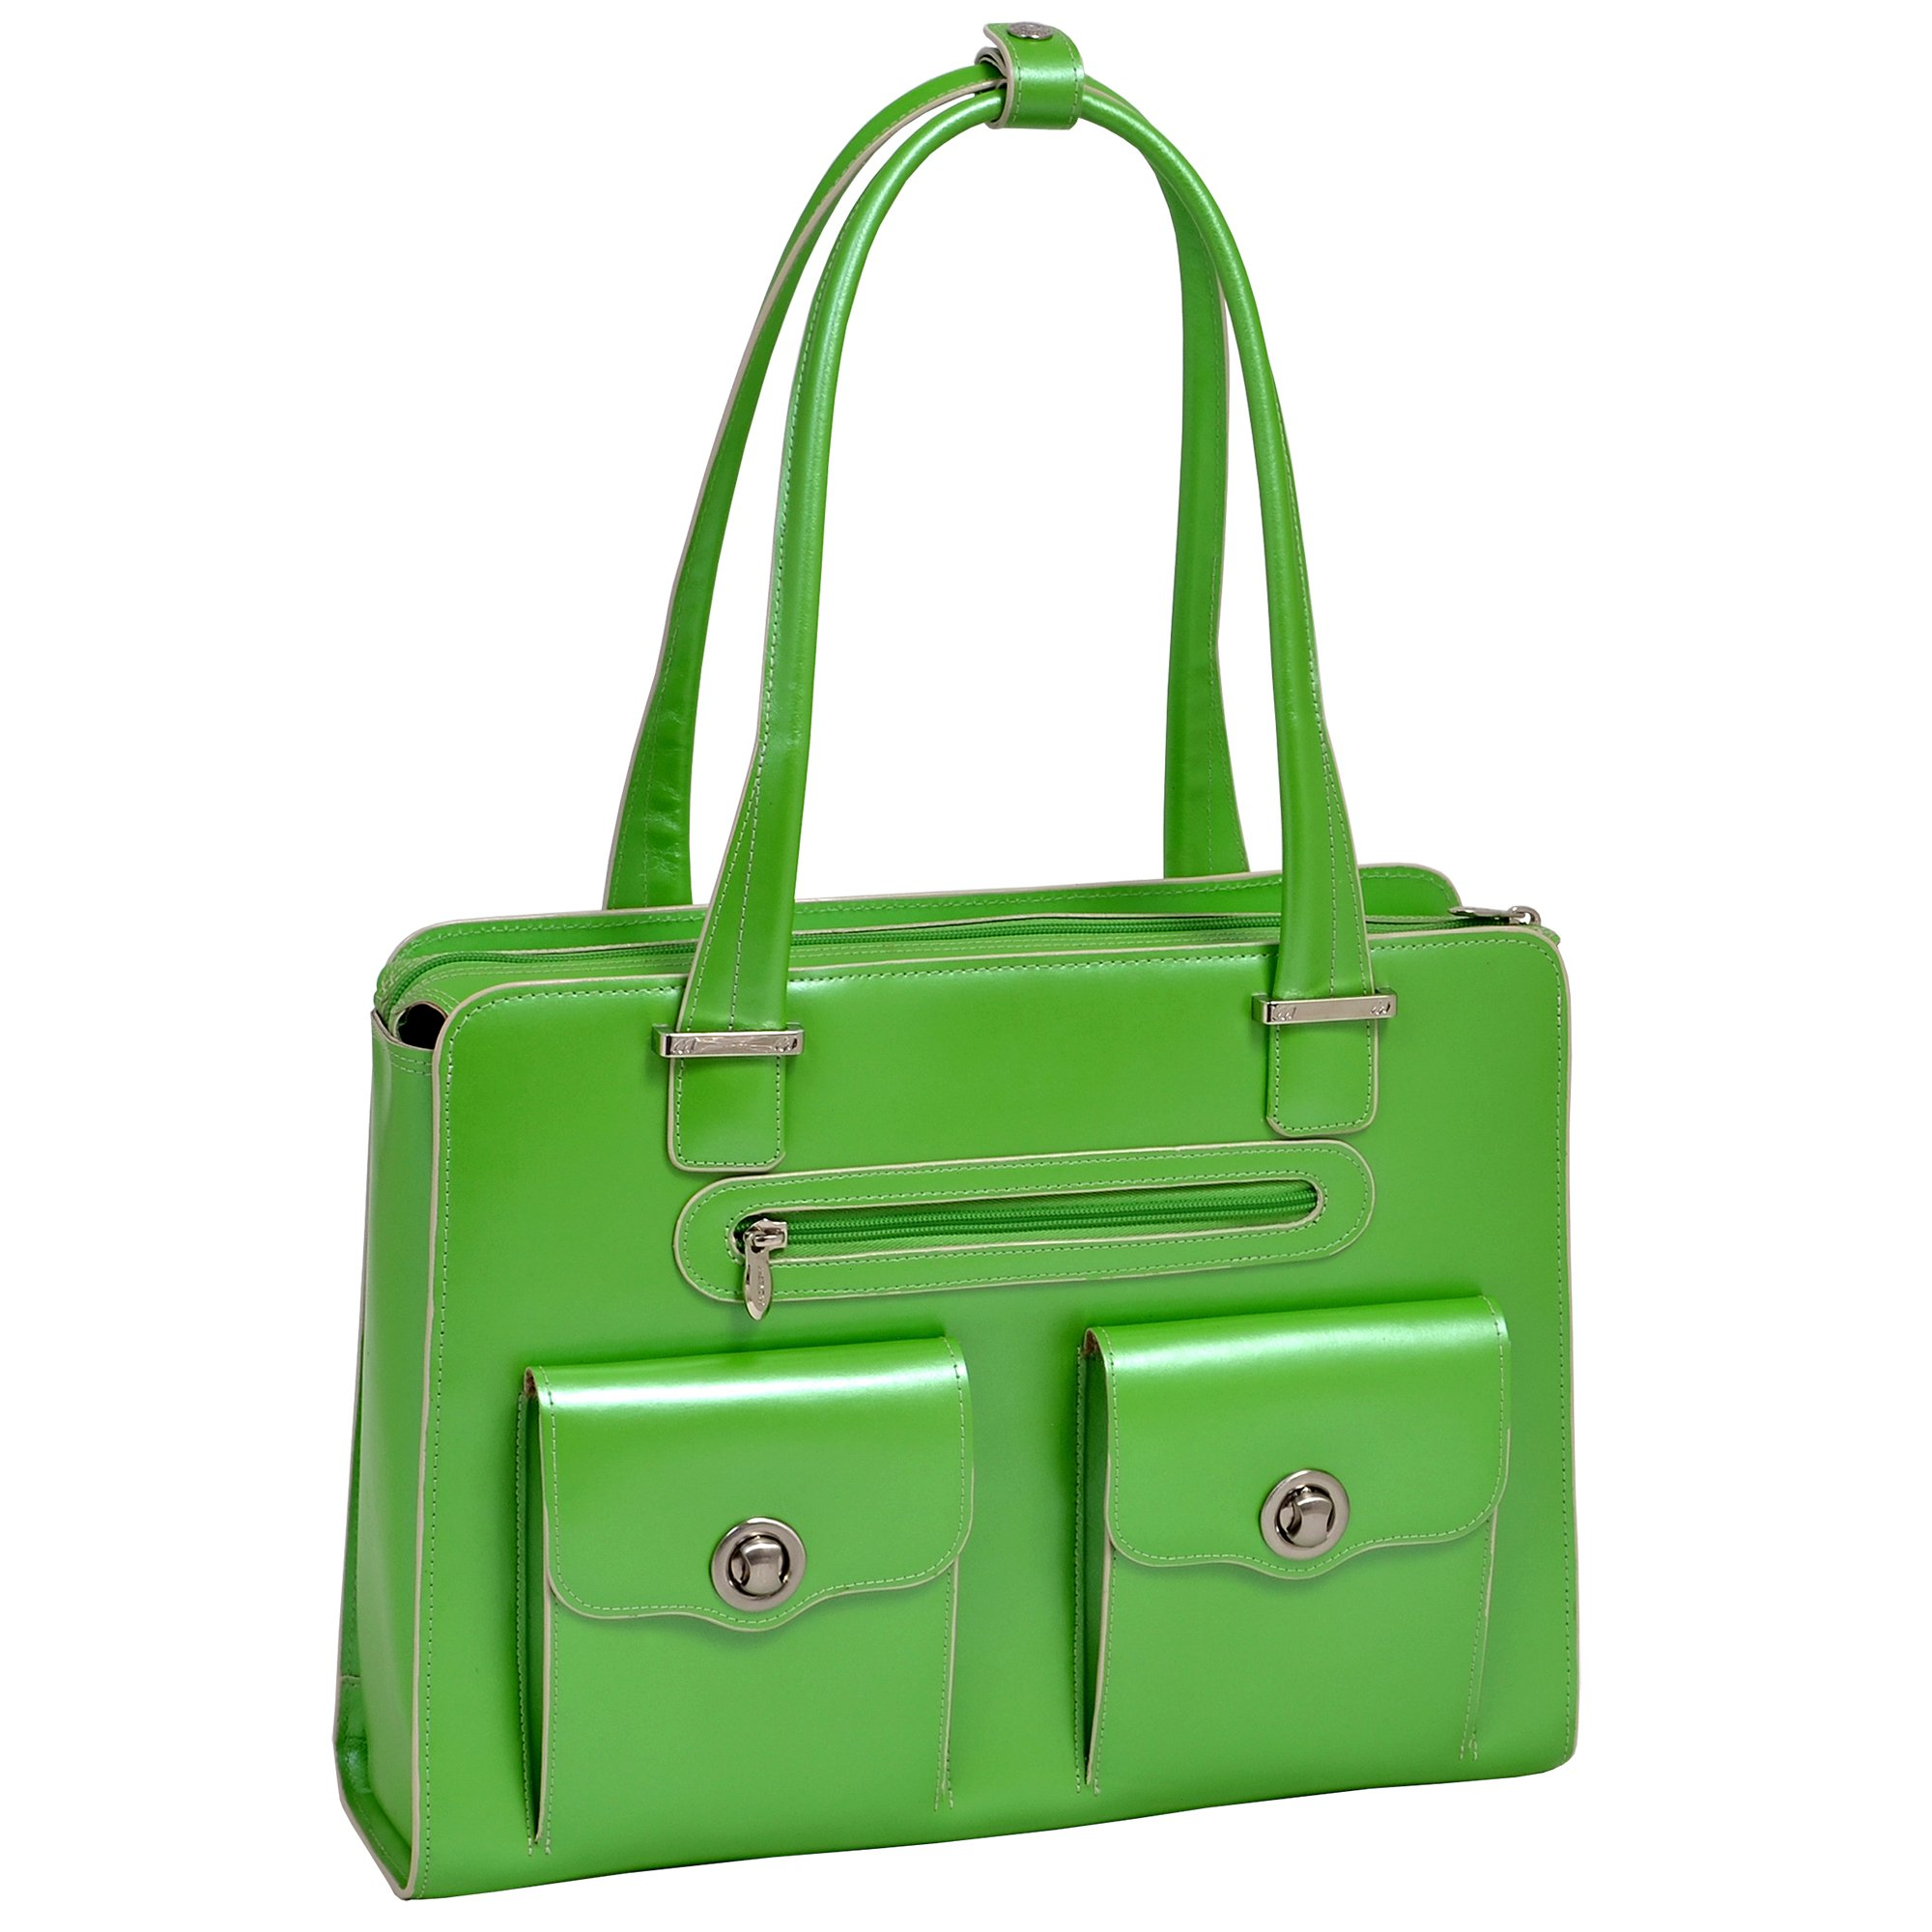 """McKlein, W Series, Verona, Top Grain Cowhide Leather, 15"""" Leather Fly-Through Checkpoint-Friendly Ladies' Laptop Briefcase, Green (96621)"""